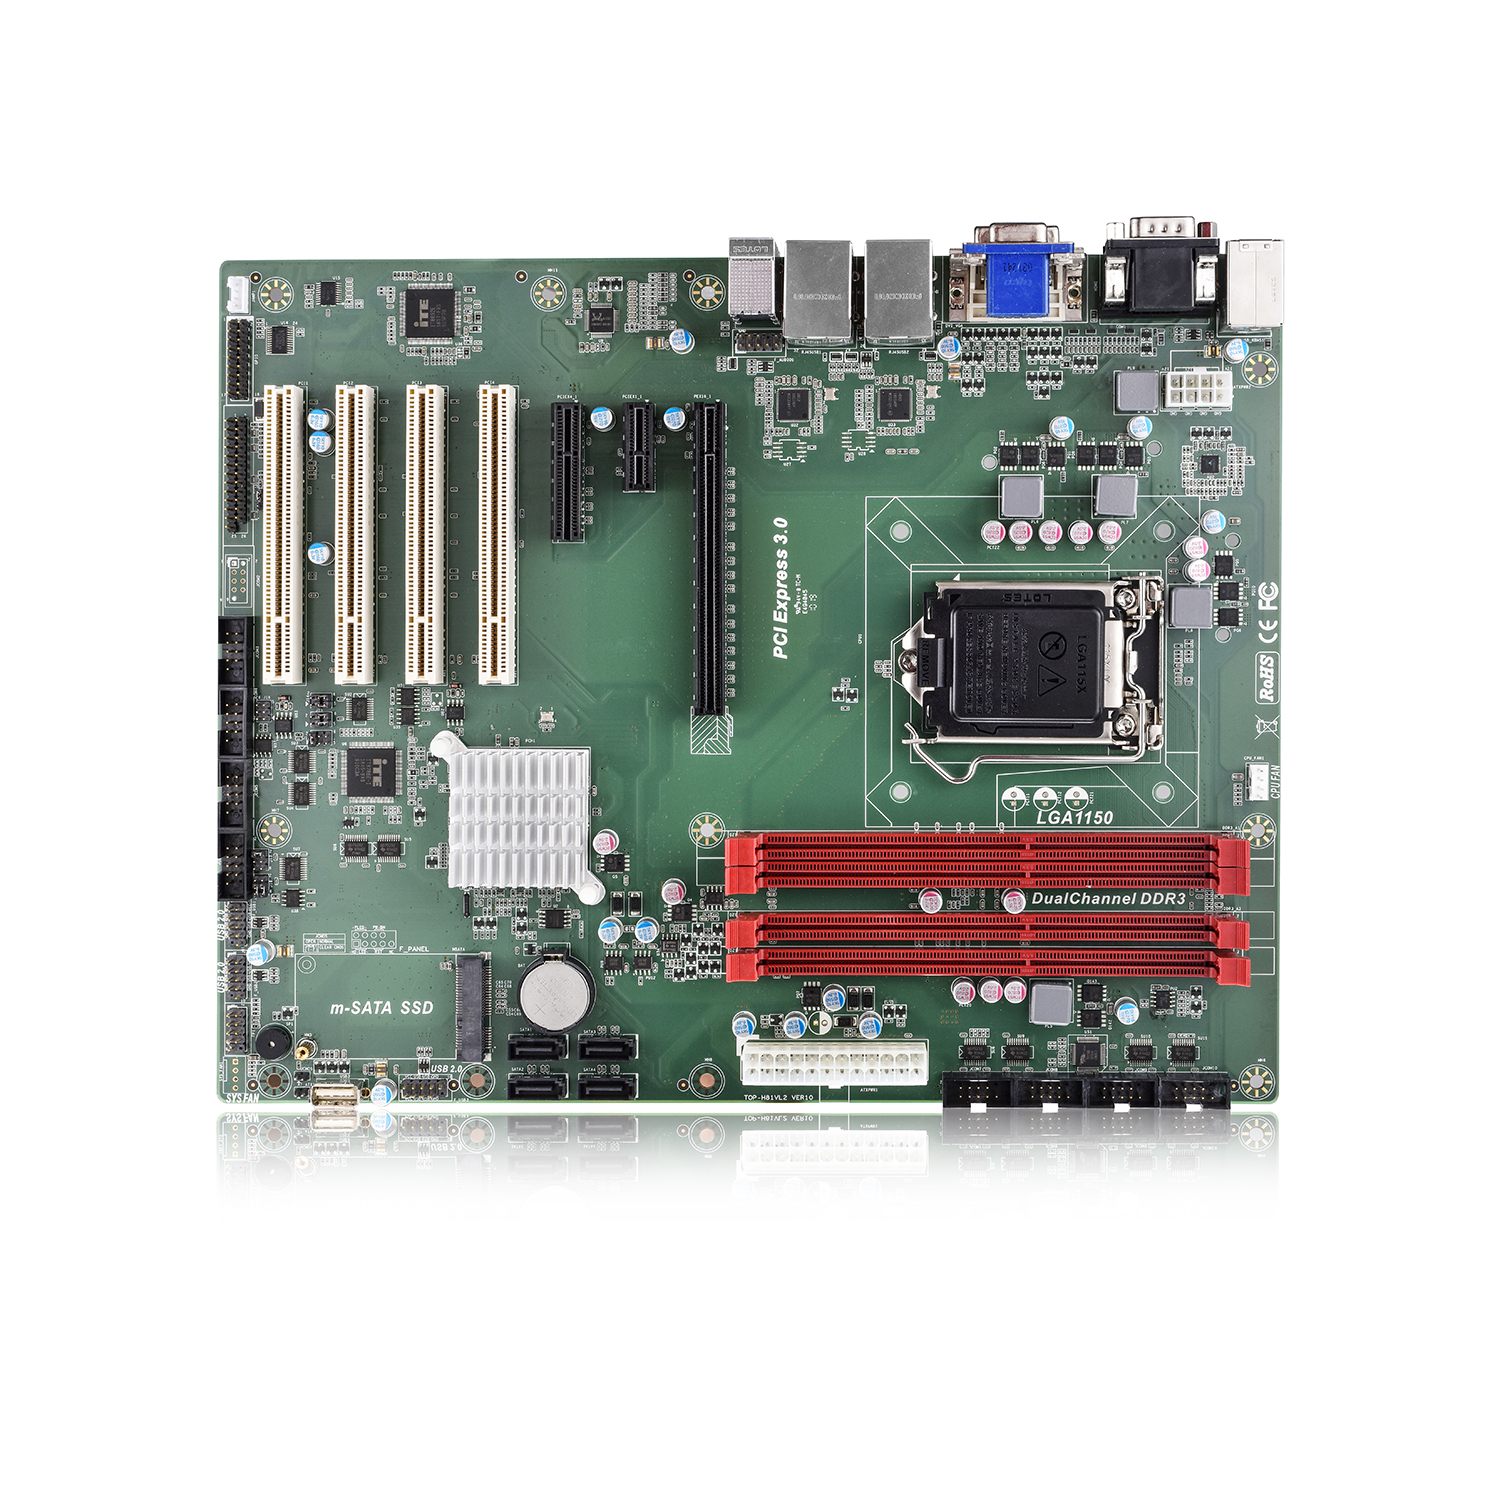 The newest machine vision industrial computer 2 pcie mini pc nic nuc board j1900 manufacturer